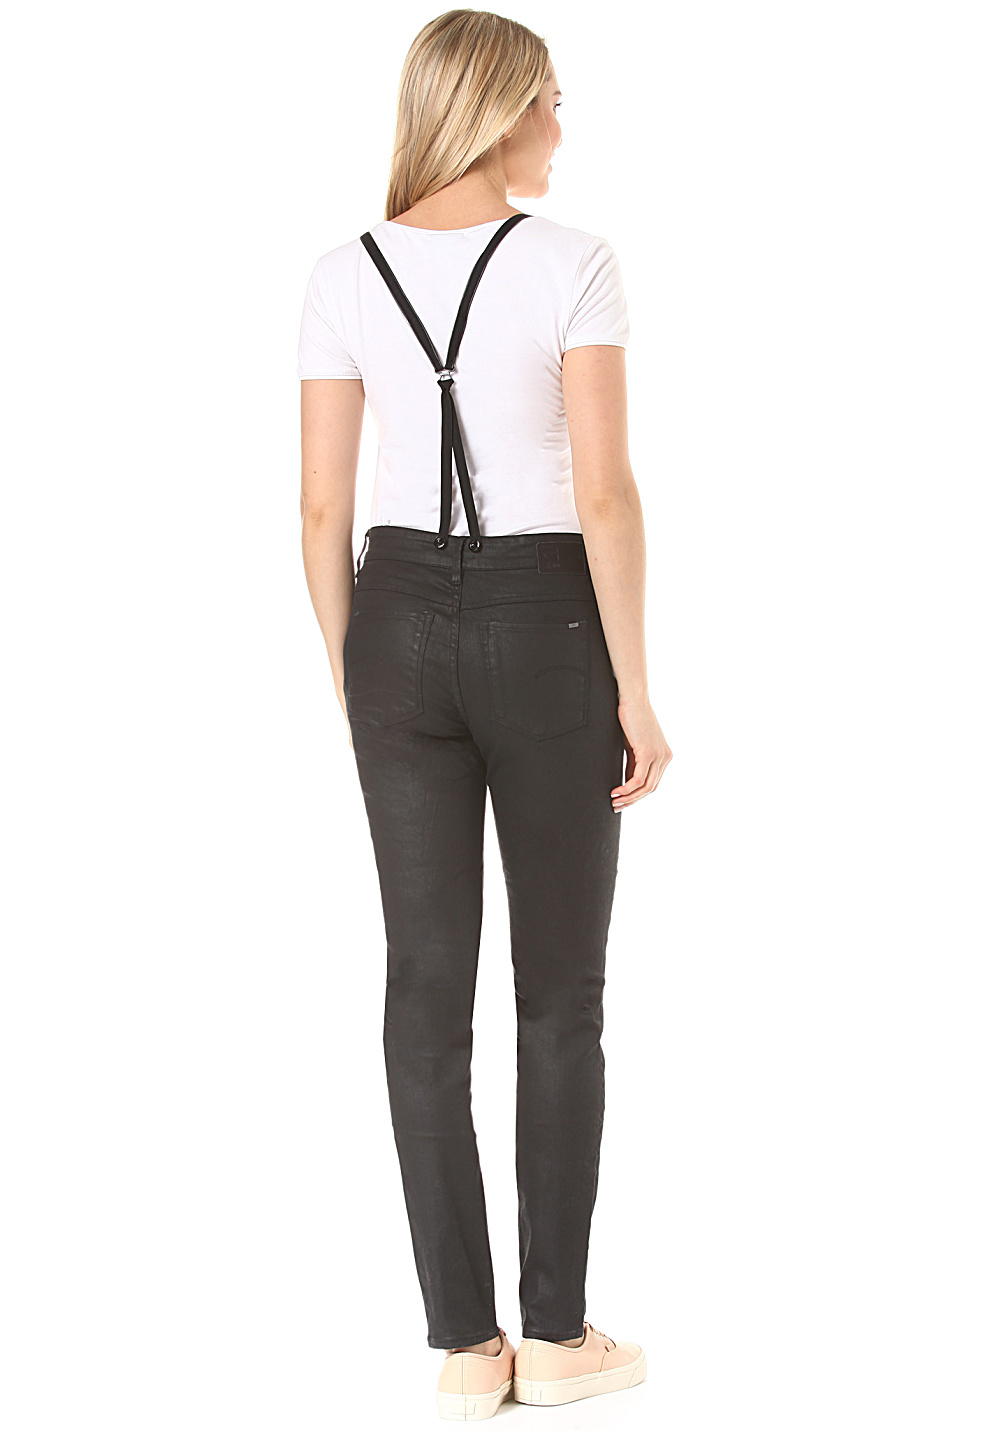 855688a91ac Next. -15%. This product is currently out of stock. G-STAR. 3301 Hw Skinny  Jumpsuit W Pintt Fem Black Stretch D - Jumpsuit for Women